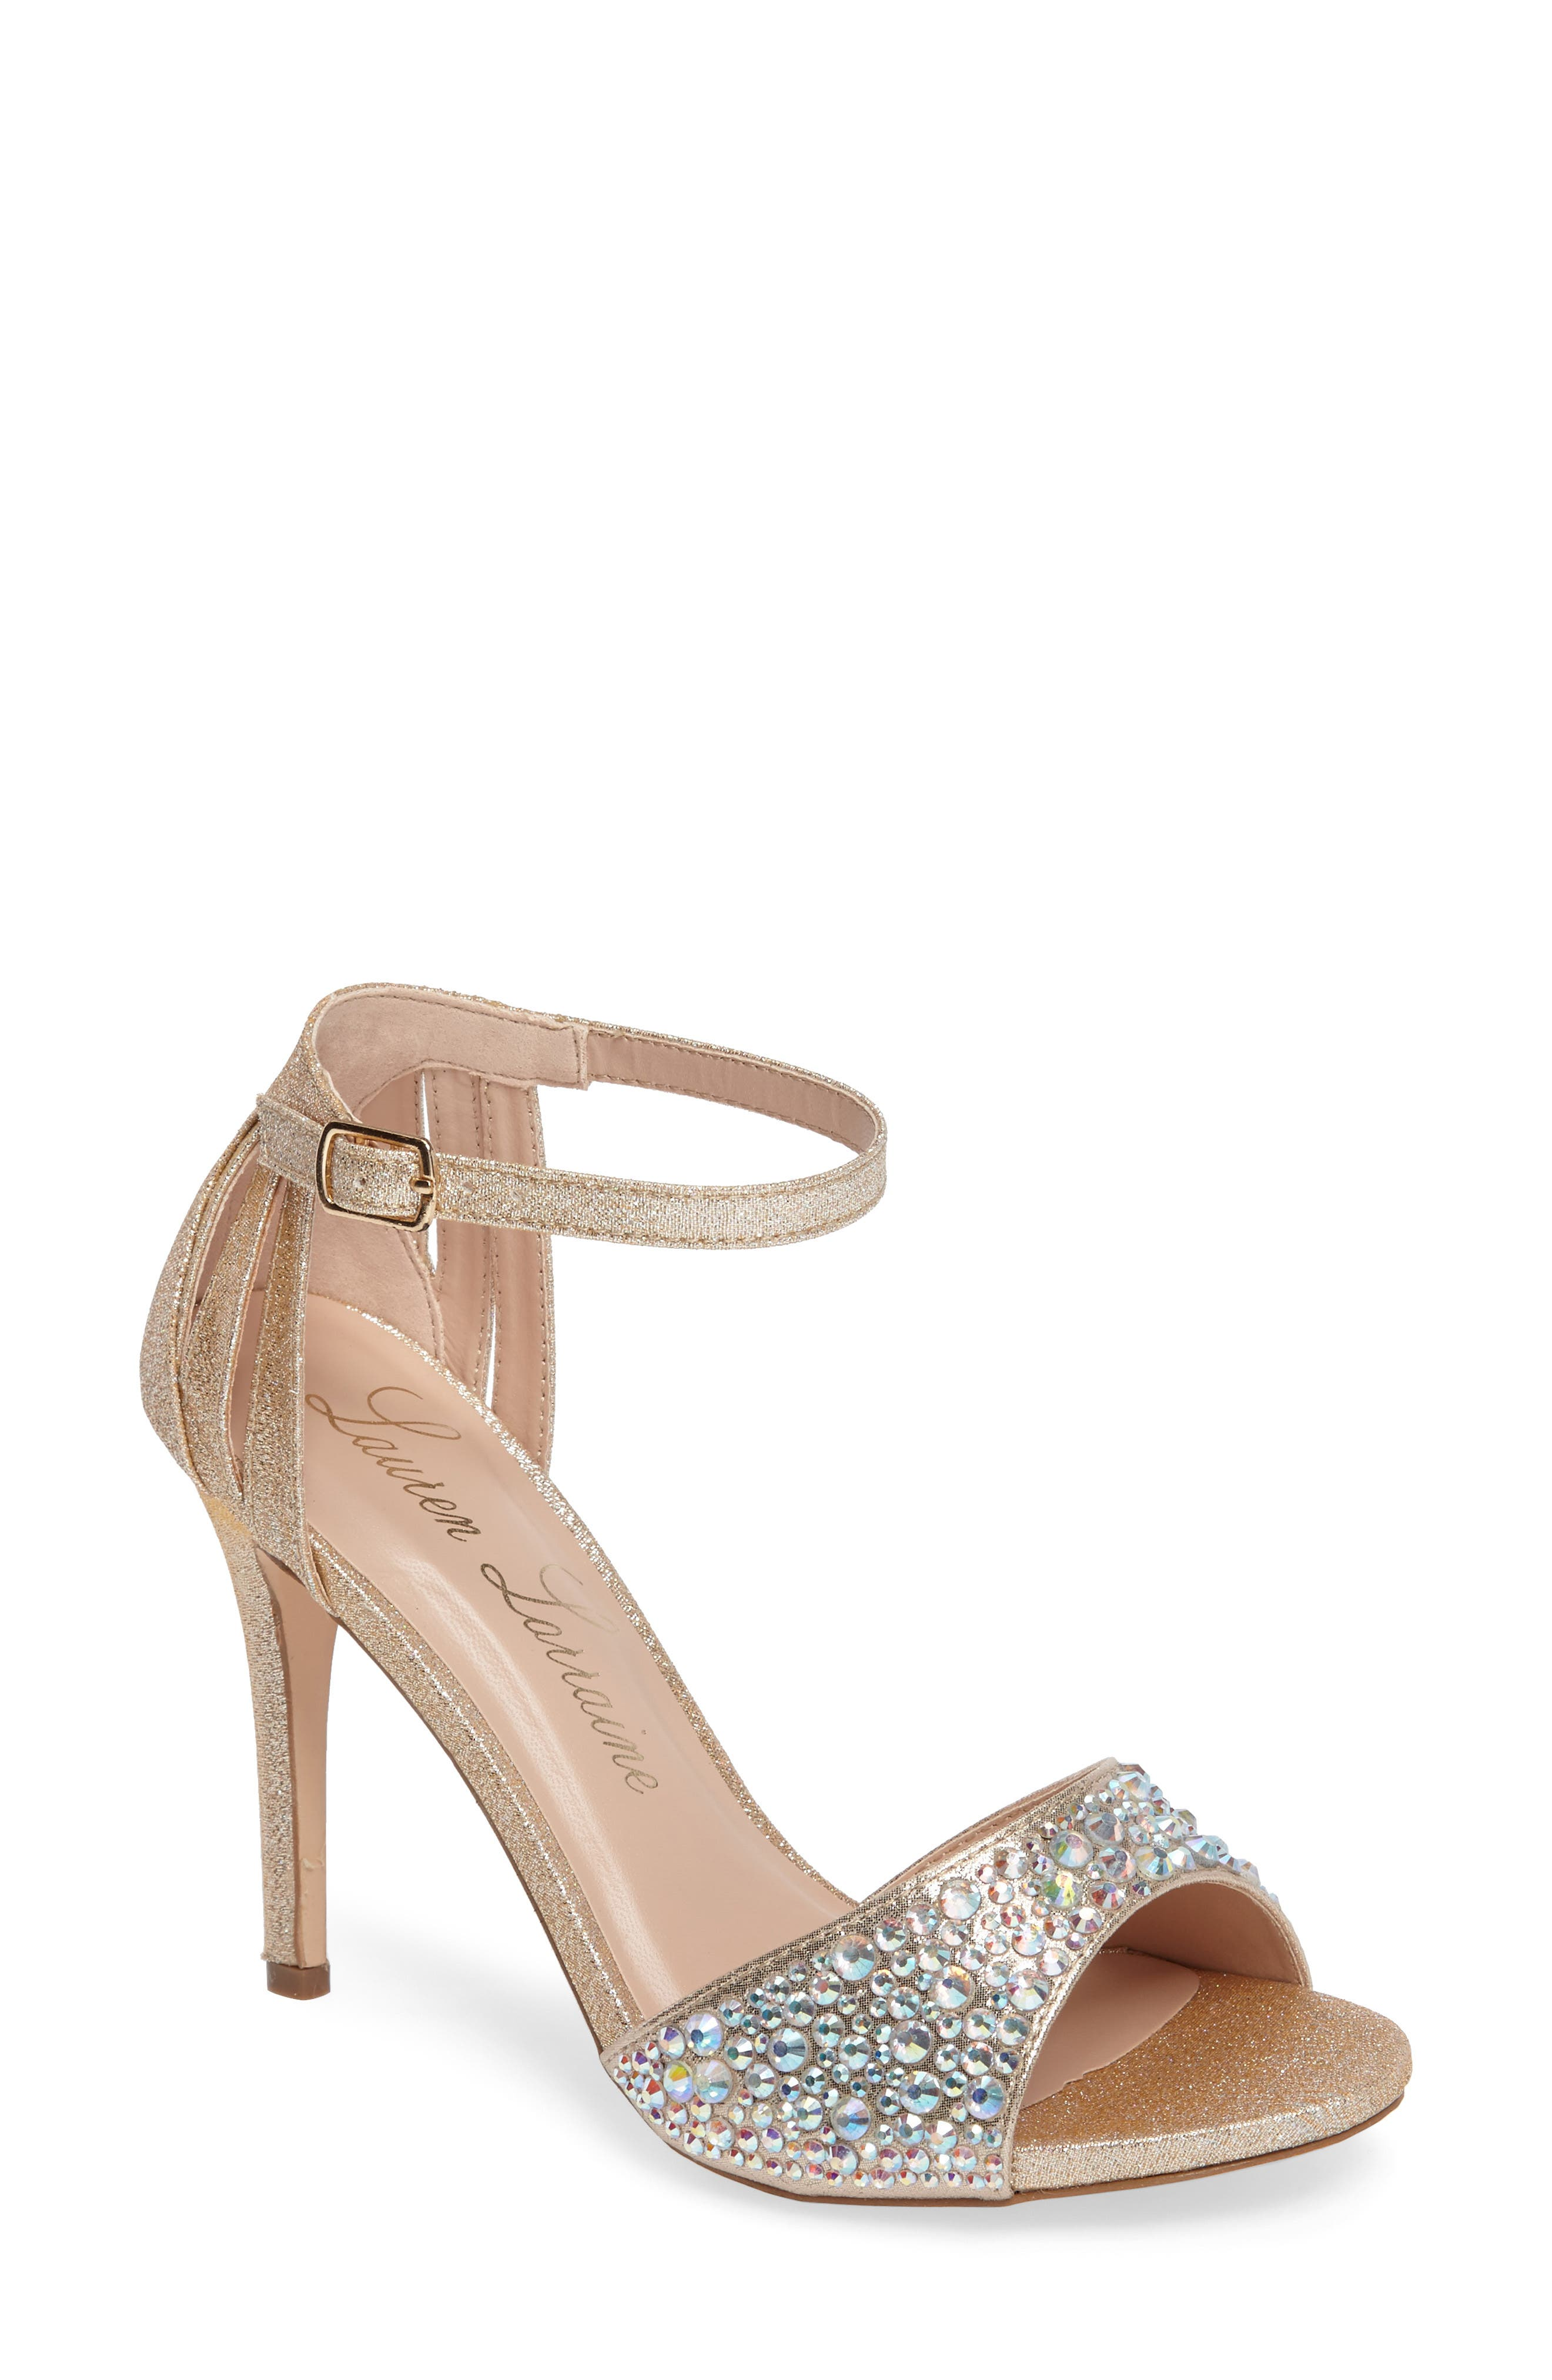 Maddy Embellished Sandal,                             Main thumbnail 1, color,                             Nude